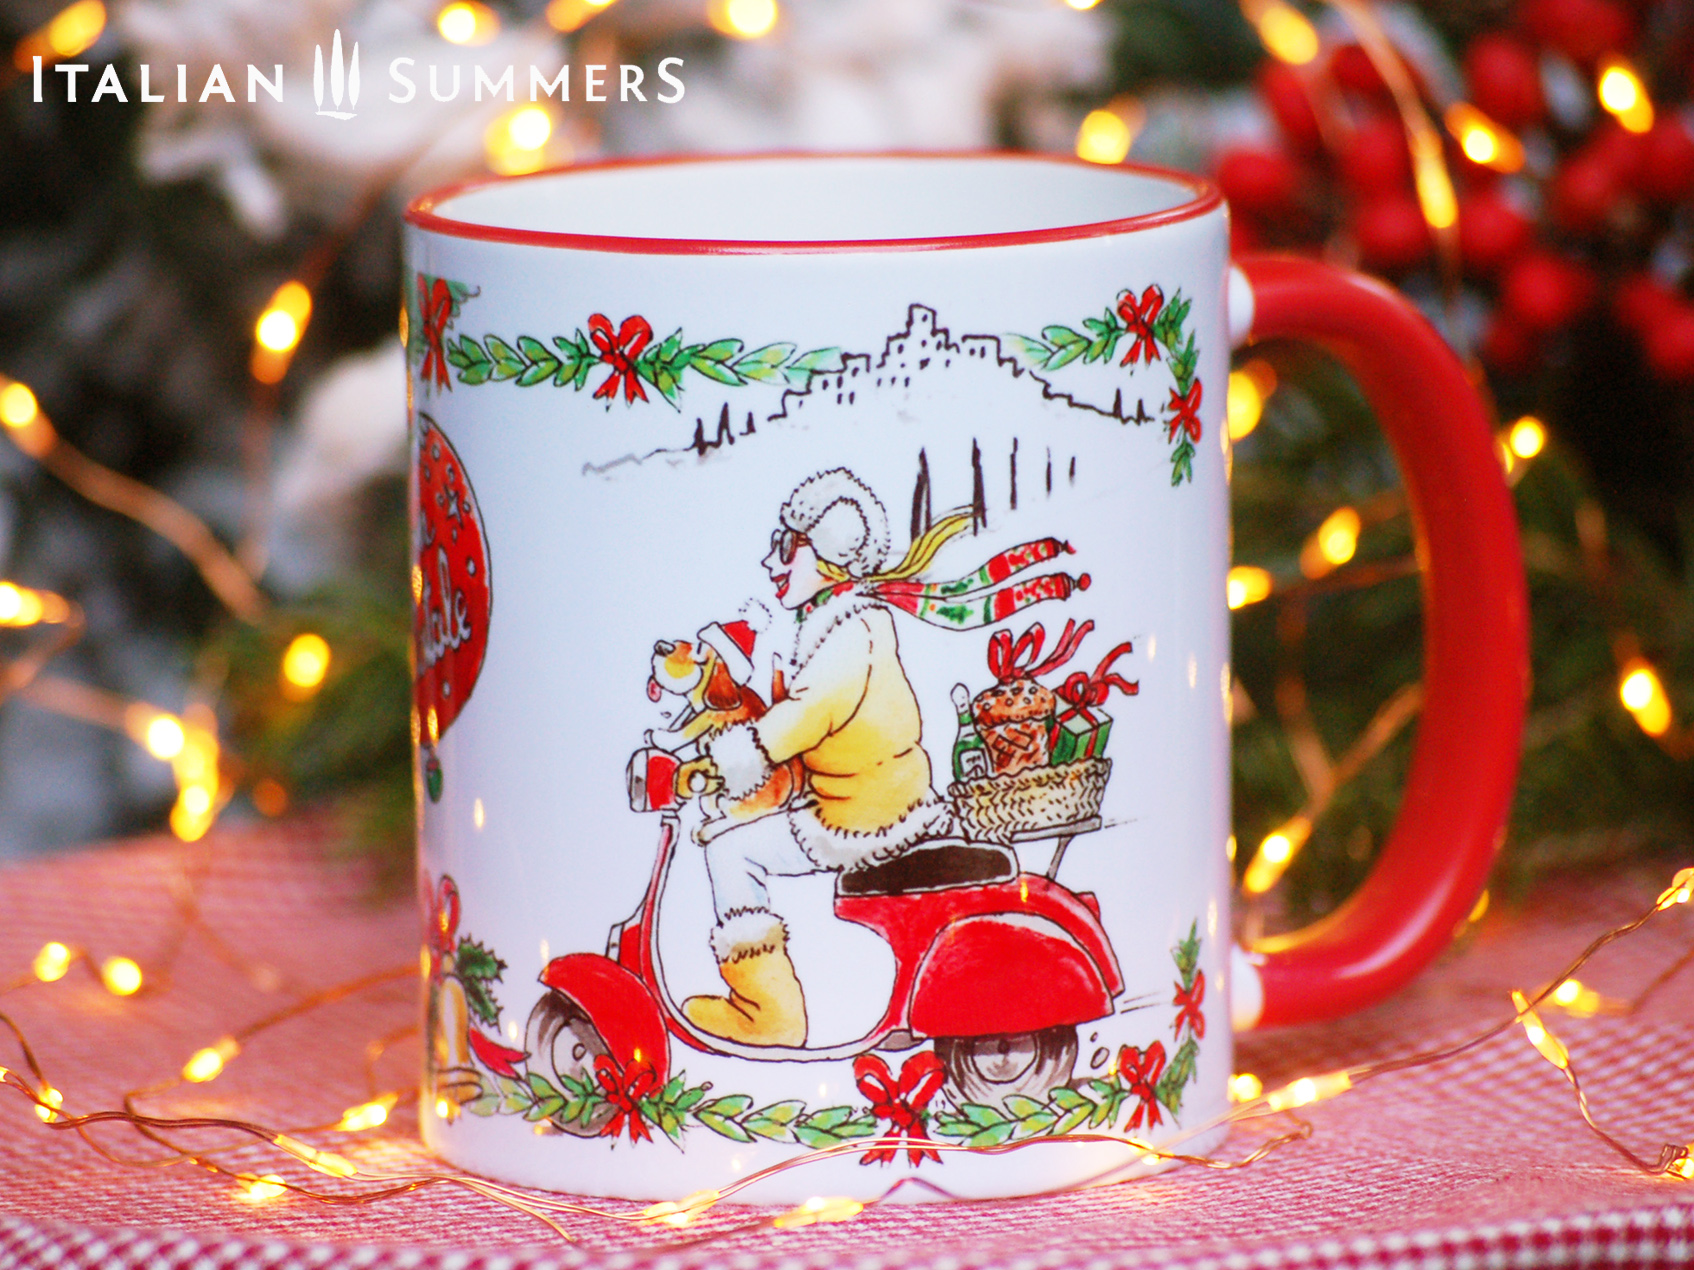 Italian Christmas mug VESPA GIRL by Italian Summers